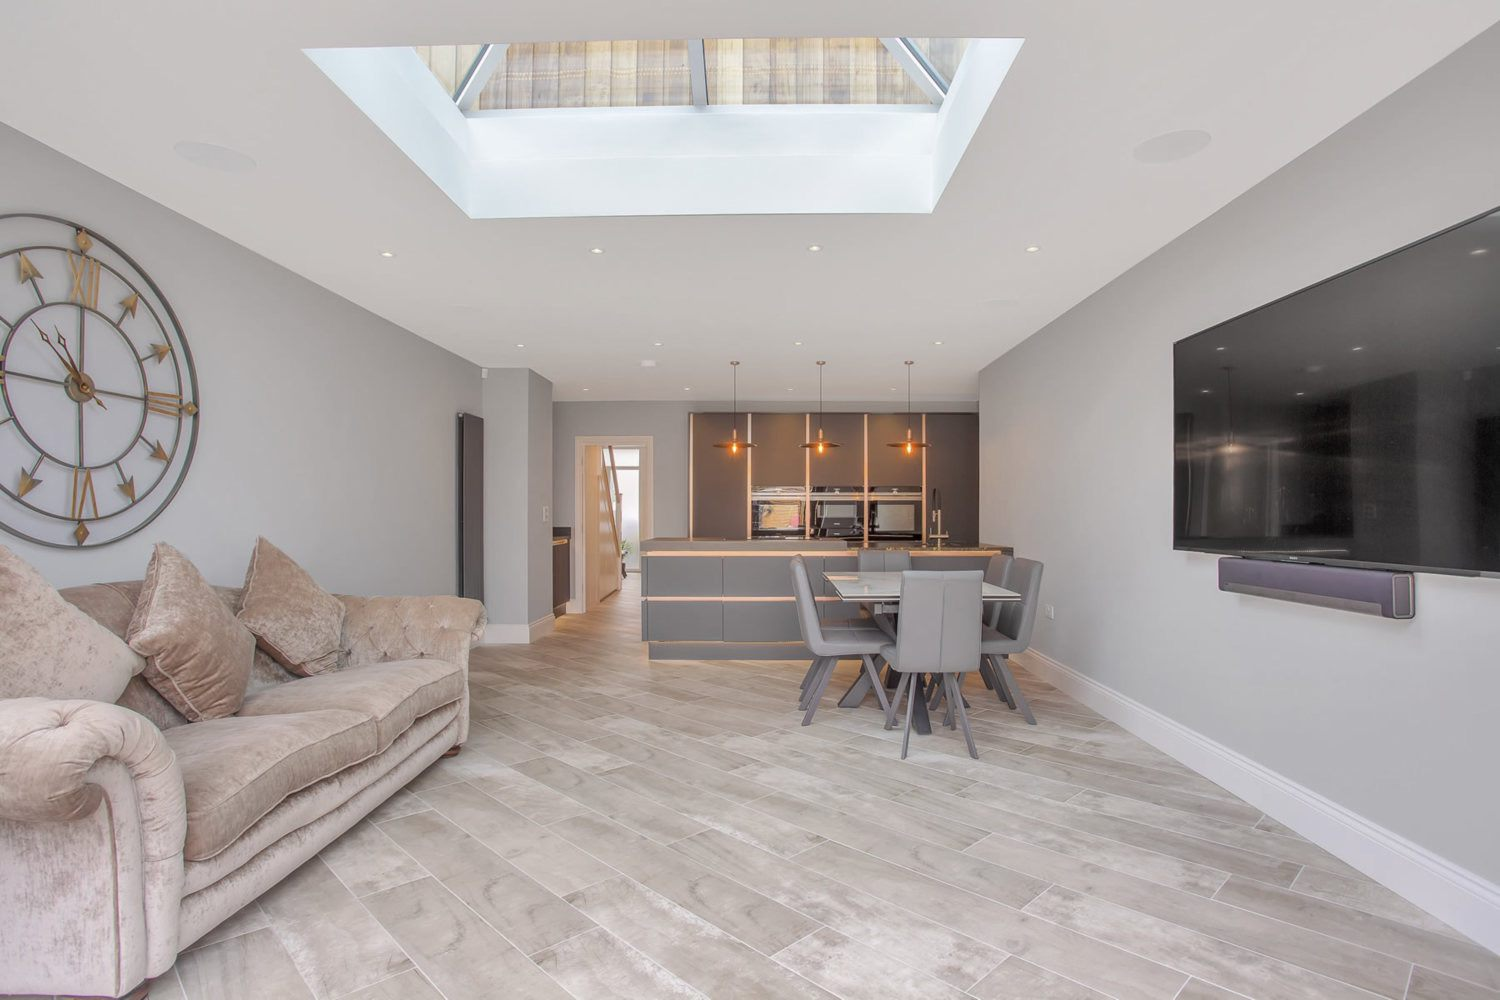 Plasterers South London - Plasterers Surrey - Ralph Plastering